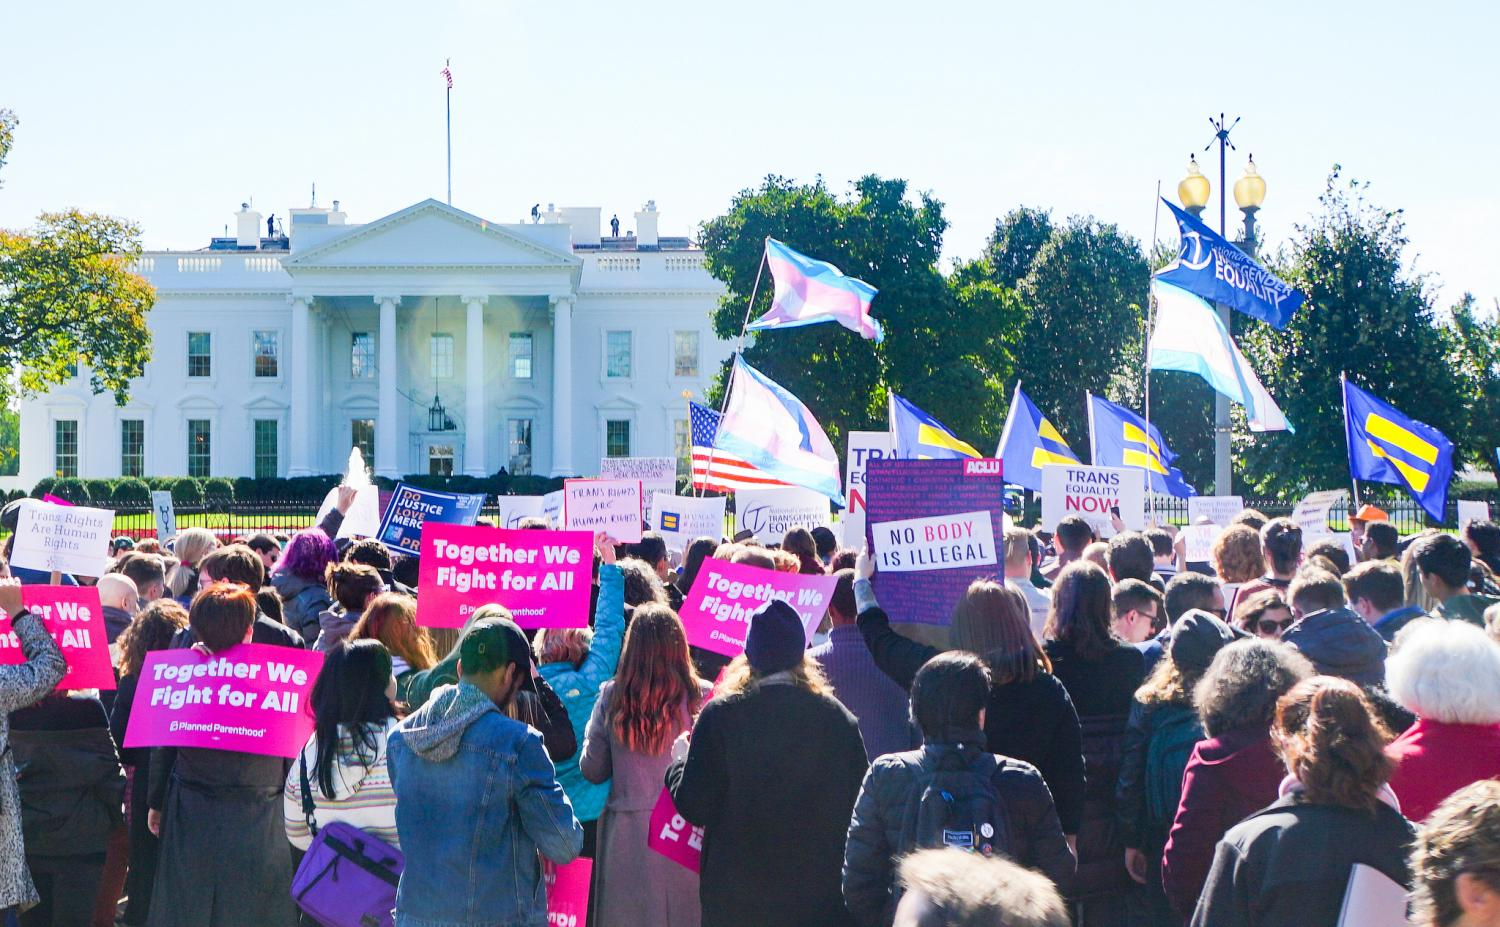 An-October-2018-rally-for-transgender-rights-in-Washington-D.C..jpg